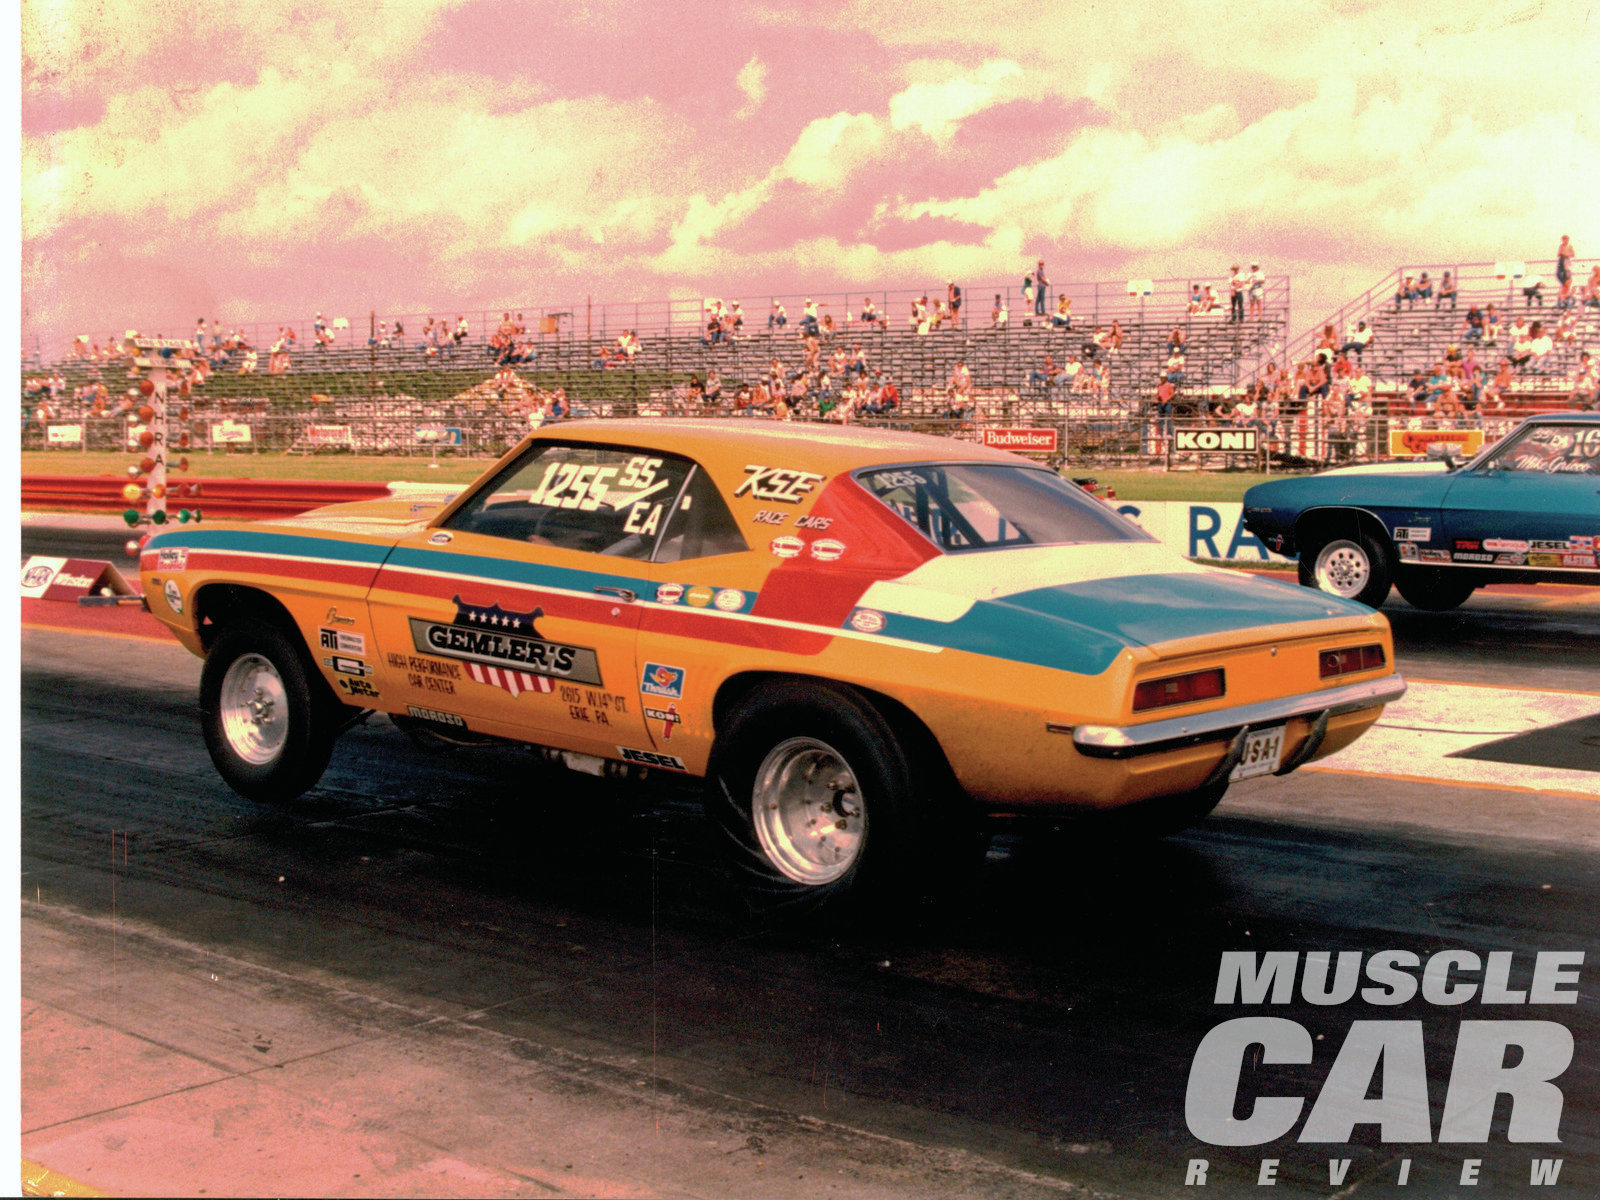 By 1975, Jere's Camaro had become a full-fledged NHRA-legal Super Stock class car, running a best of 11.10 at 131 mph. Note that at this point, all of the distinguishing trademarks that made it a Yenko have disappeared.